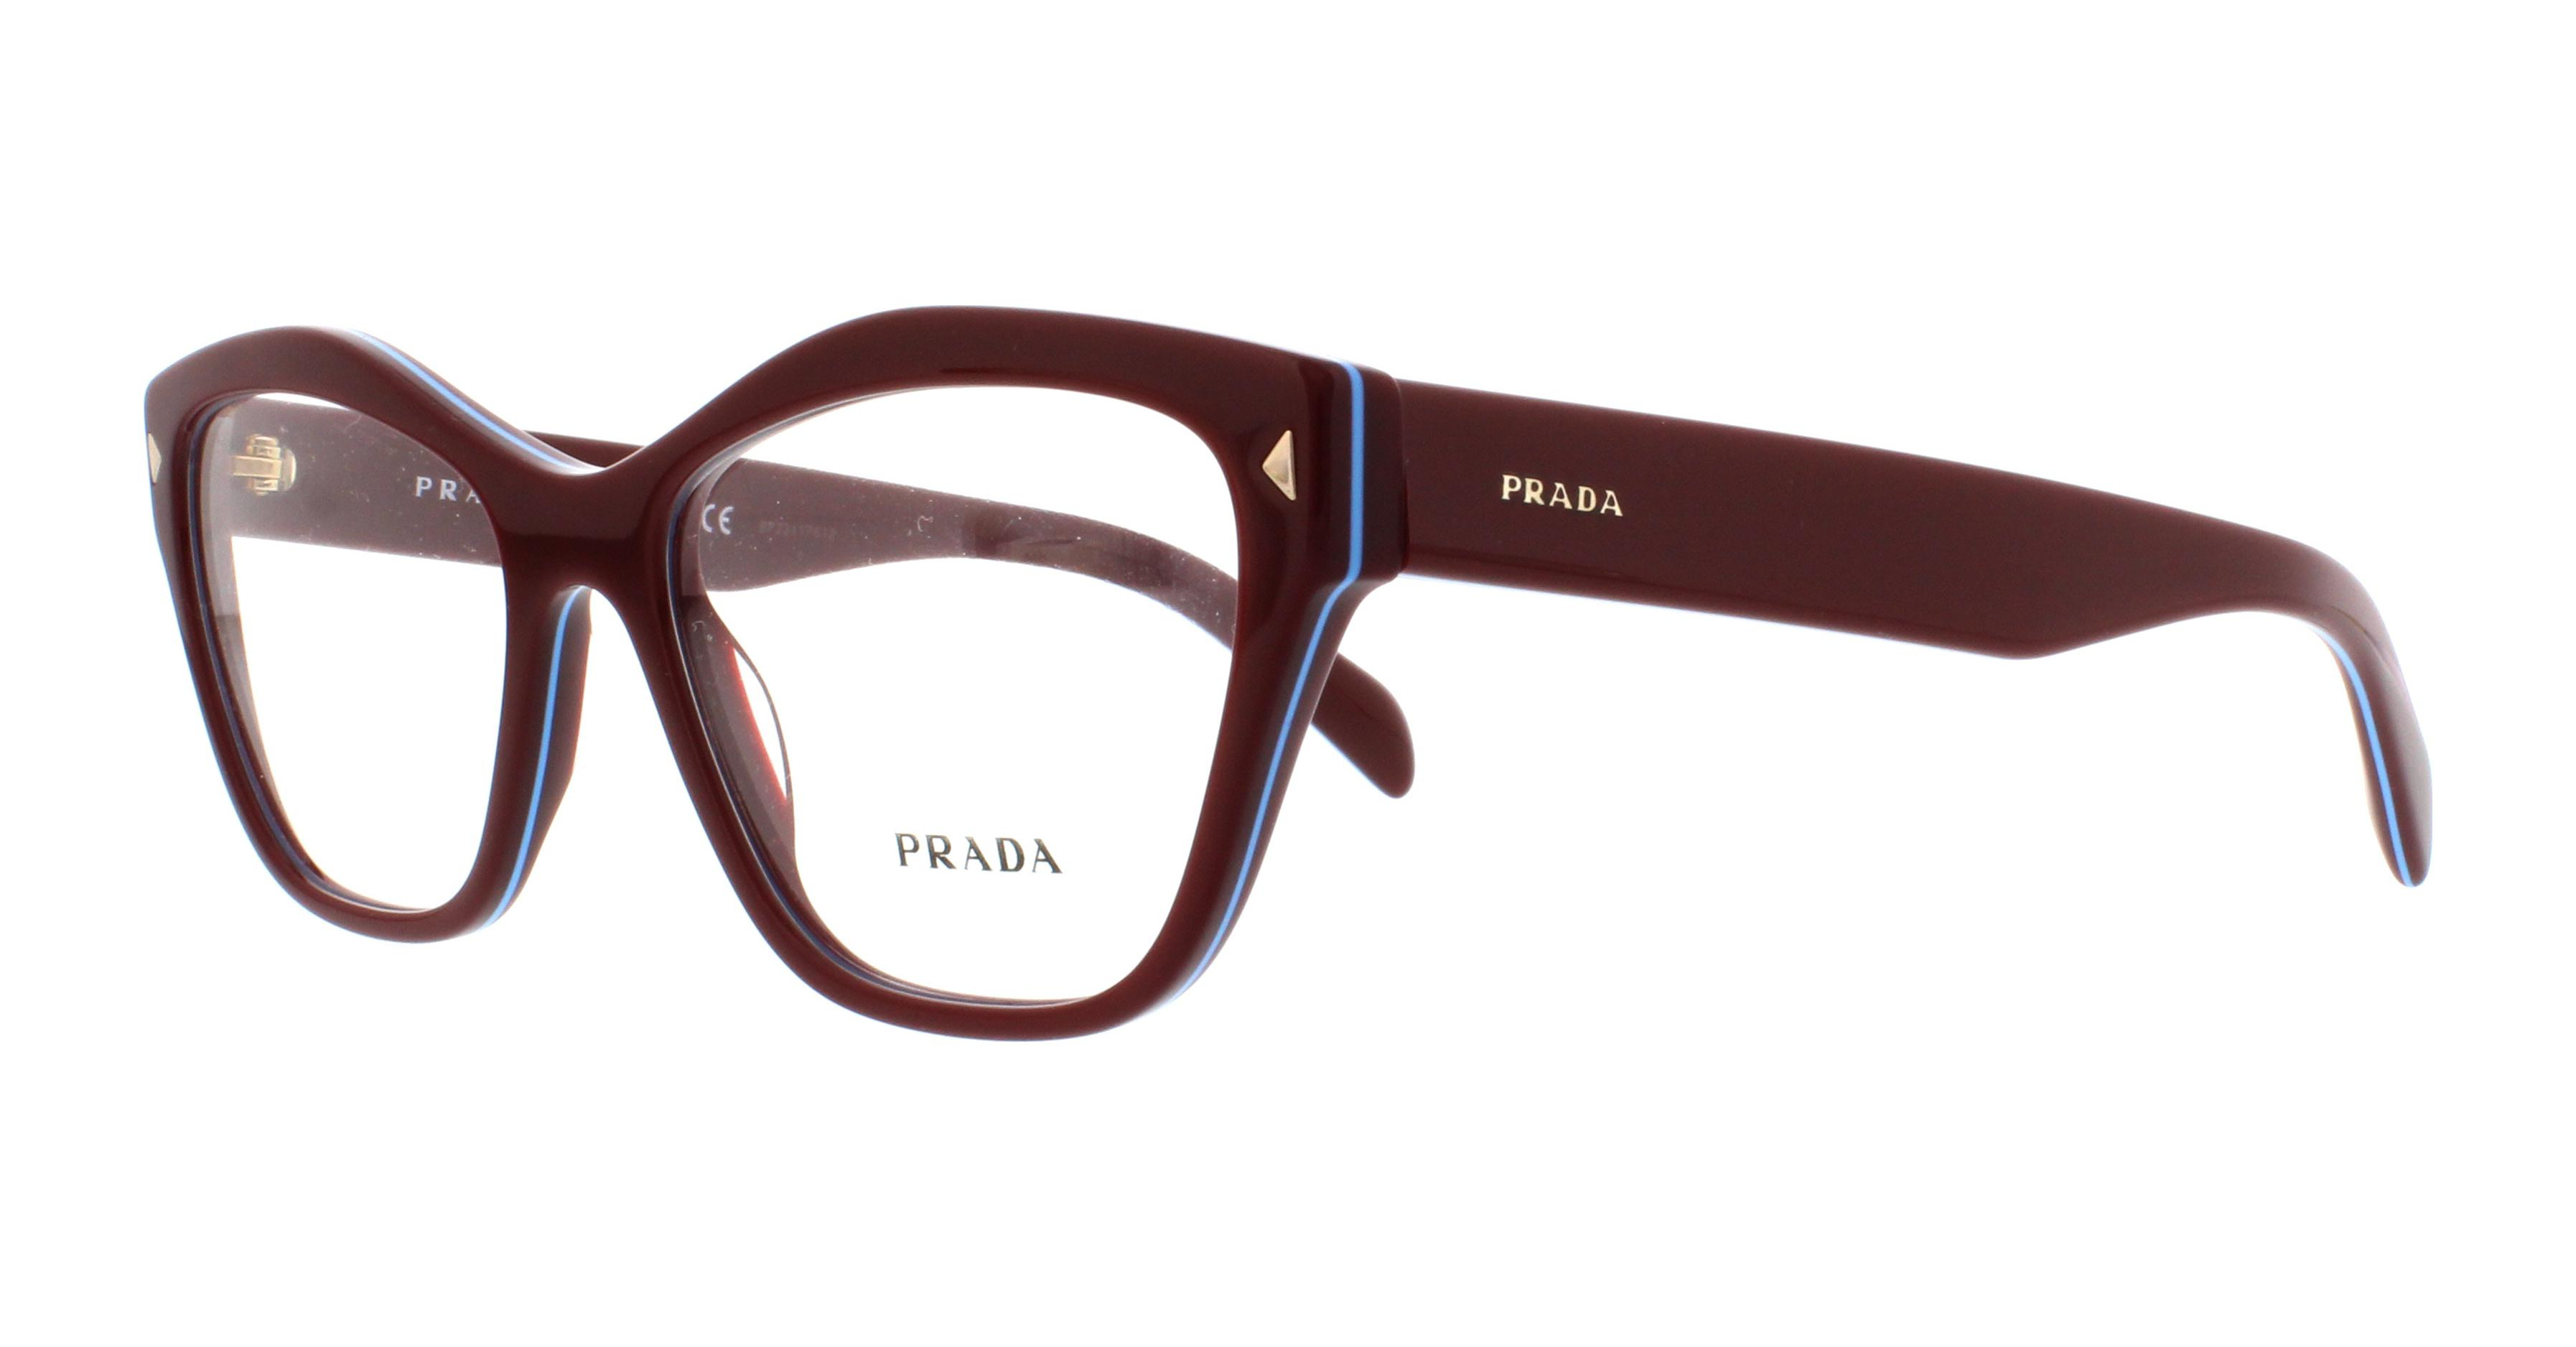 prada shoes 40×53mm dimensions for carry on